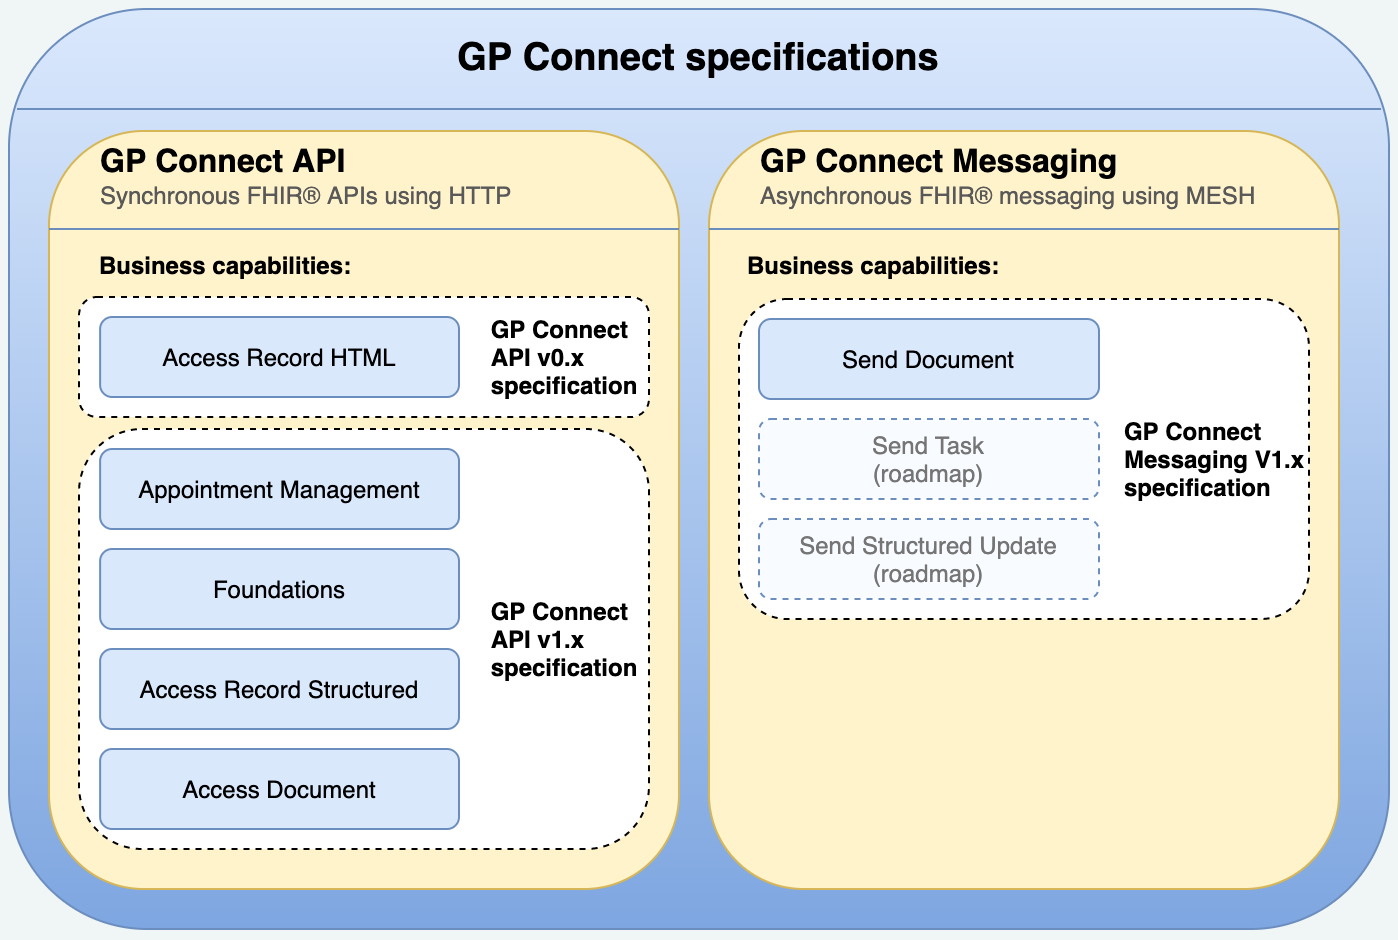 Image showing GP Connect specifications